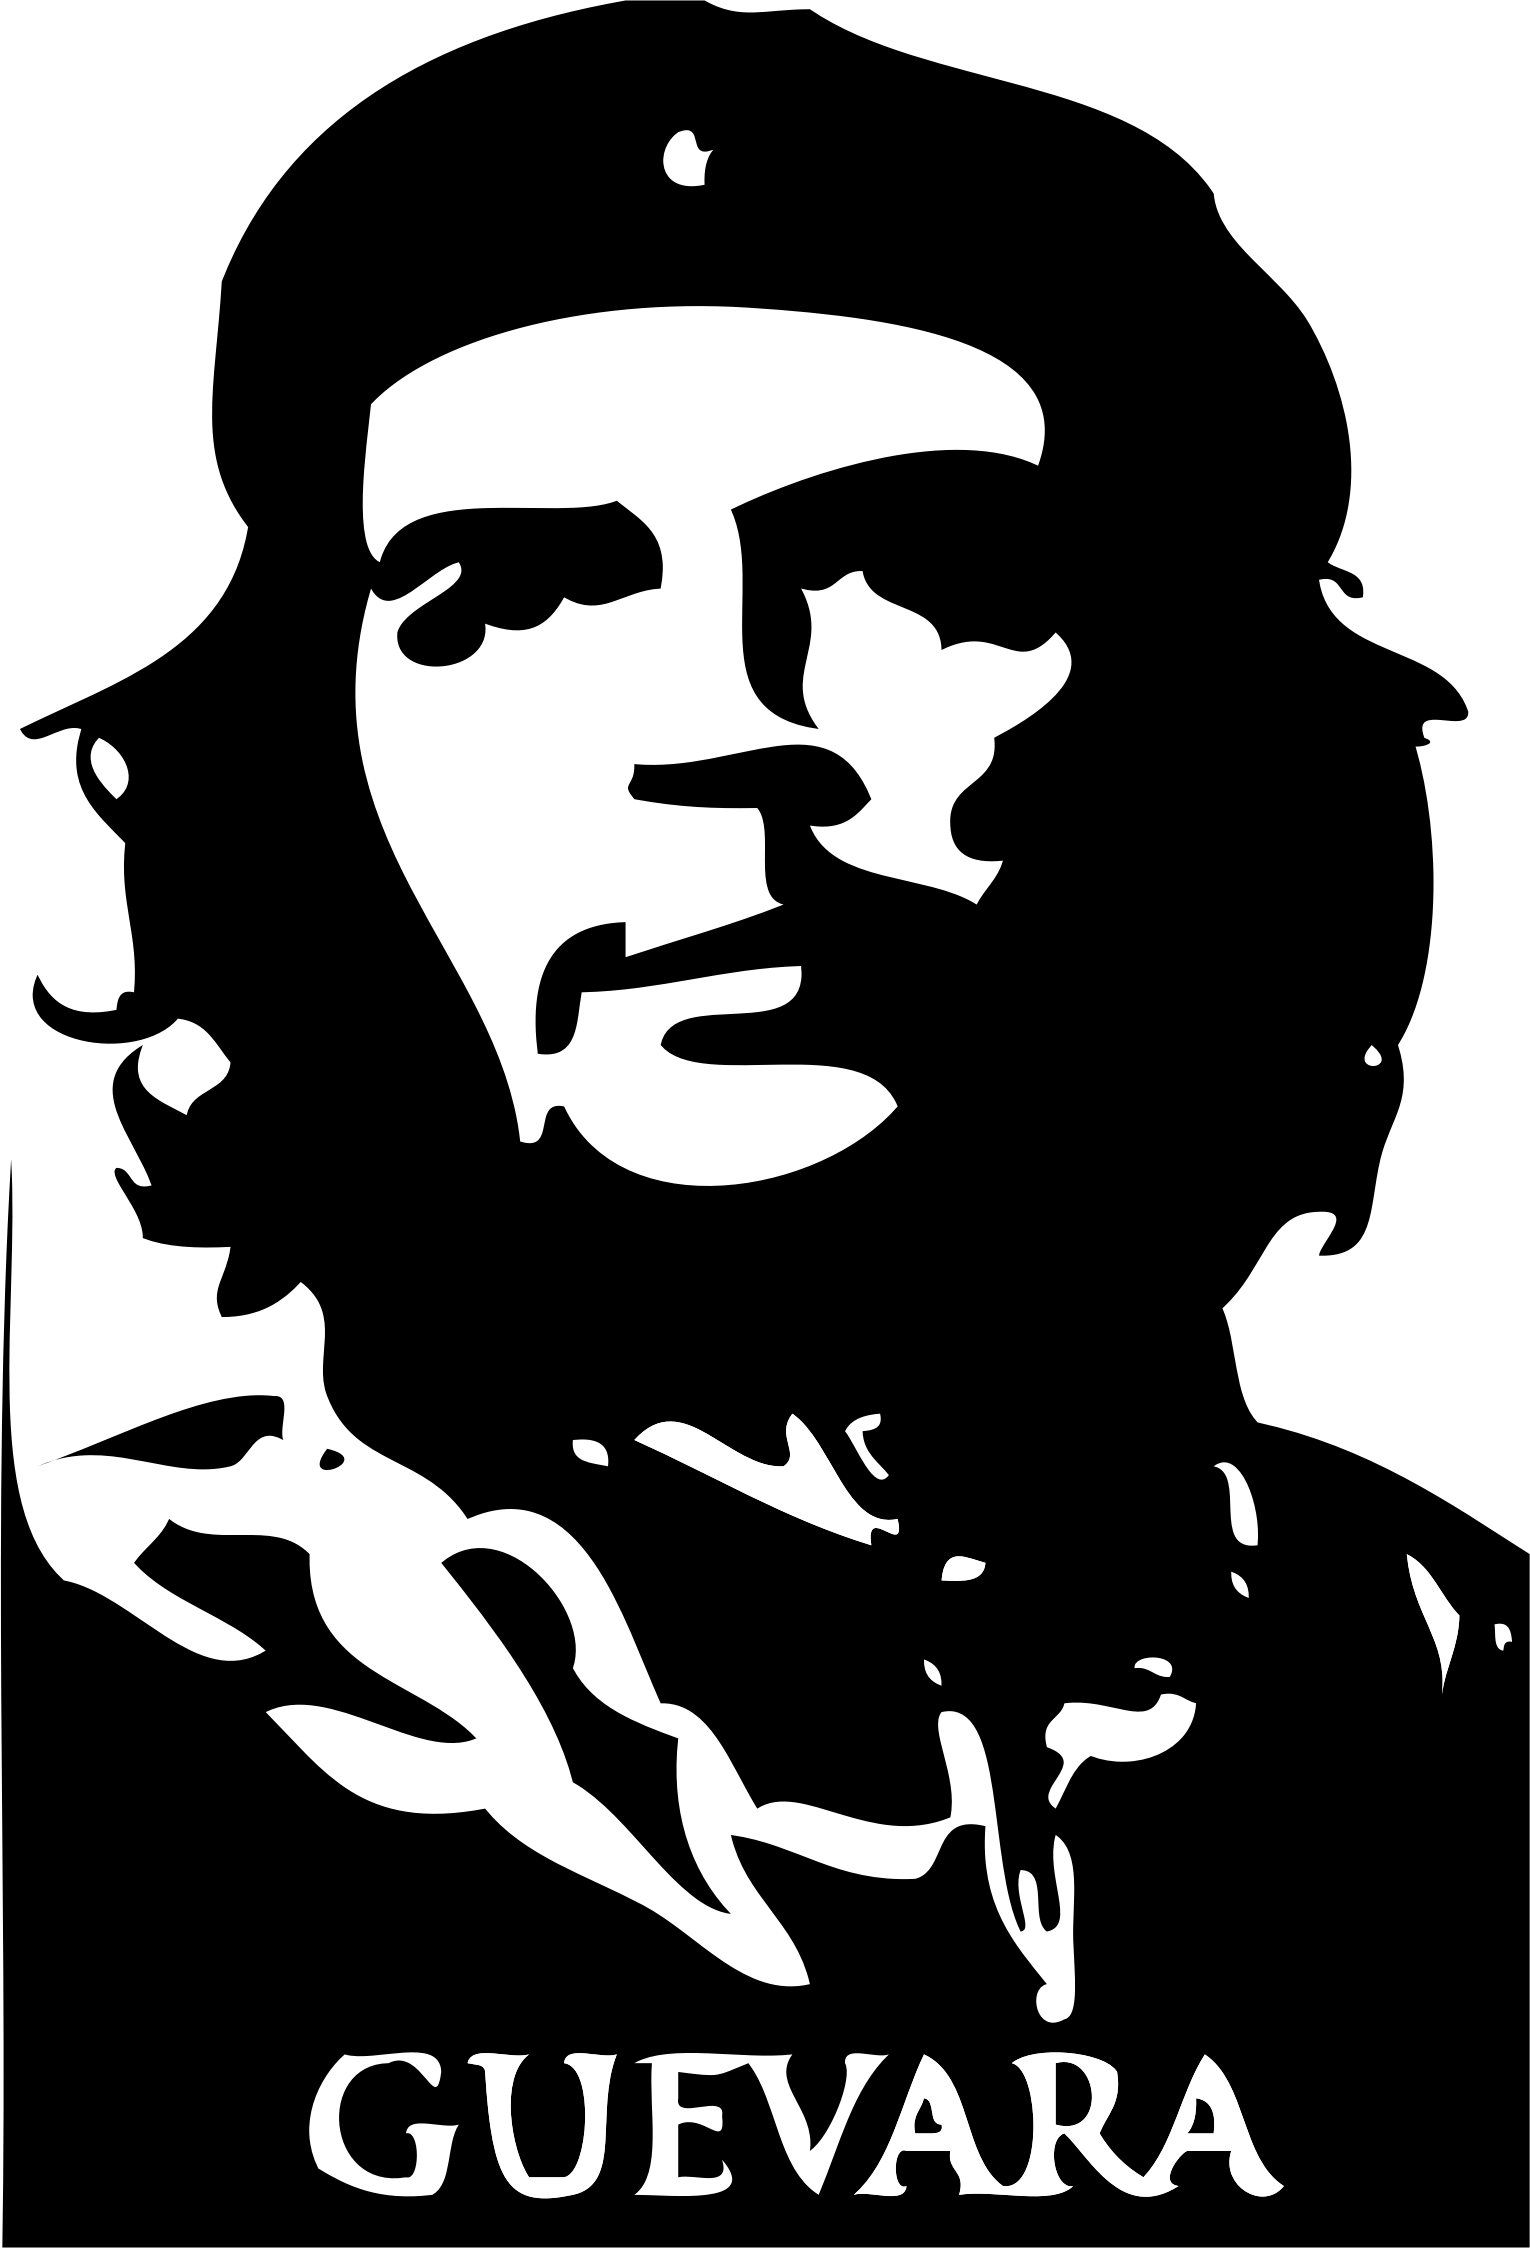 che guevara png images for download crazypngm crazy png images download #30282